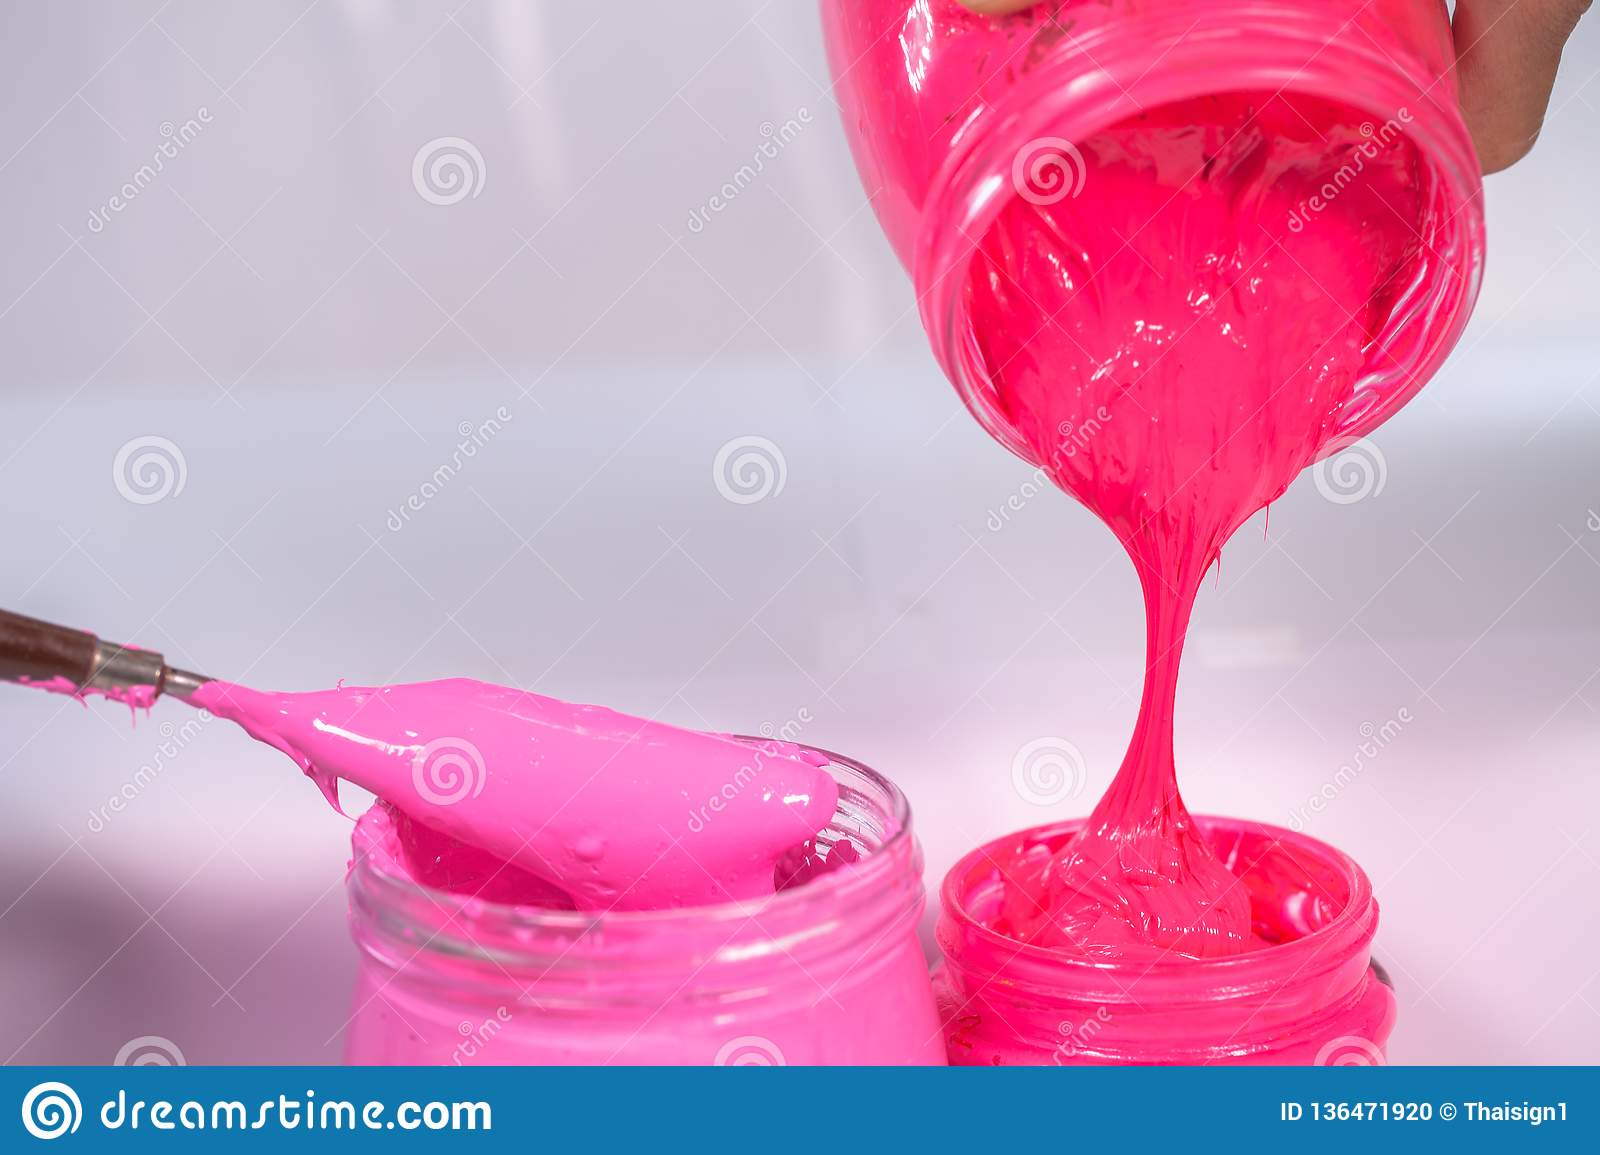 Plastic Pink Color And Hot Pink Color Stock Photo - Image of ...